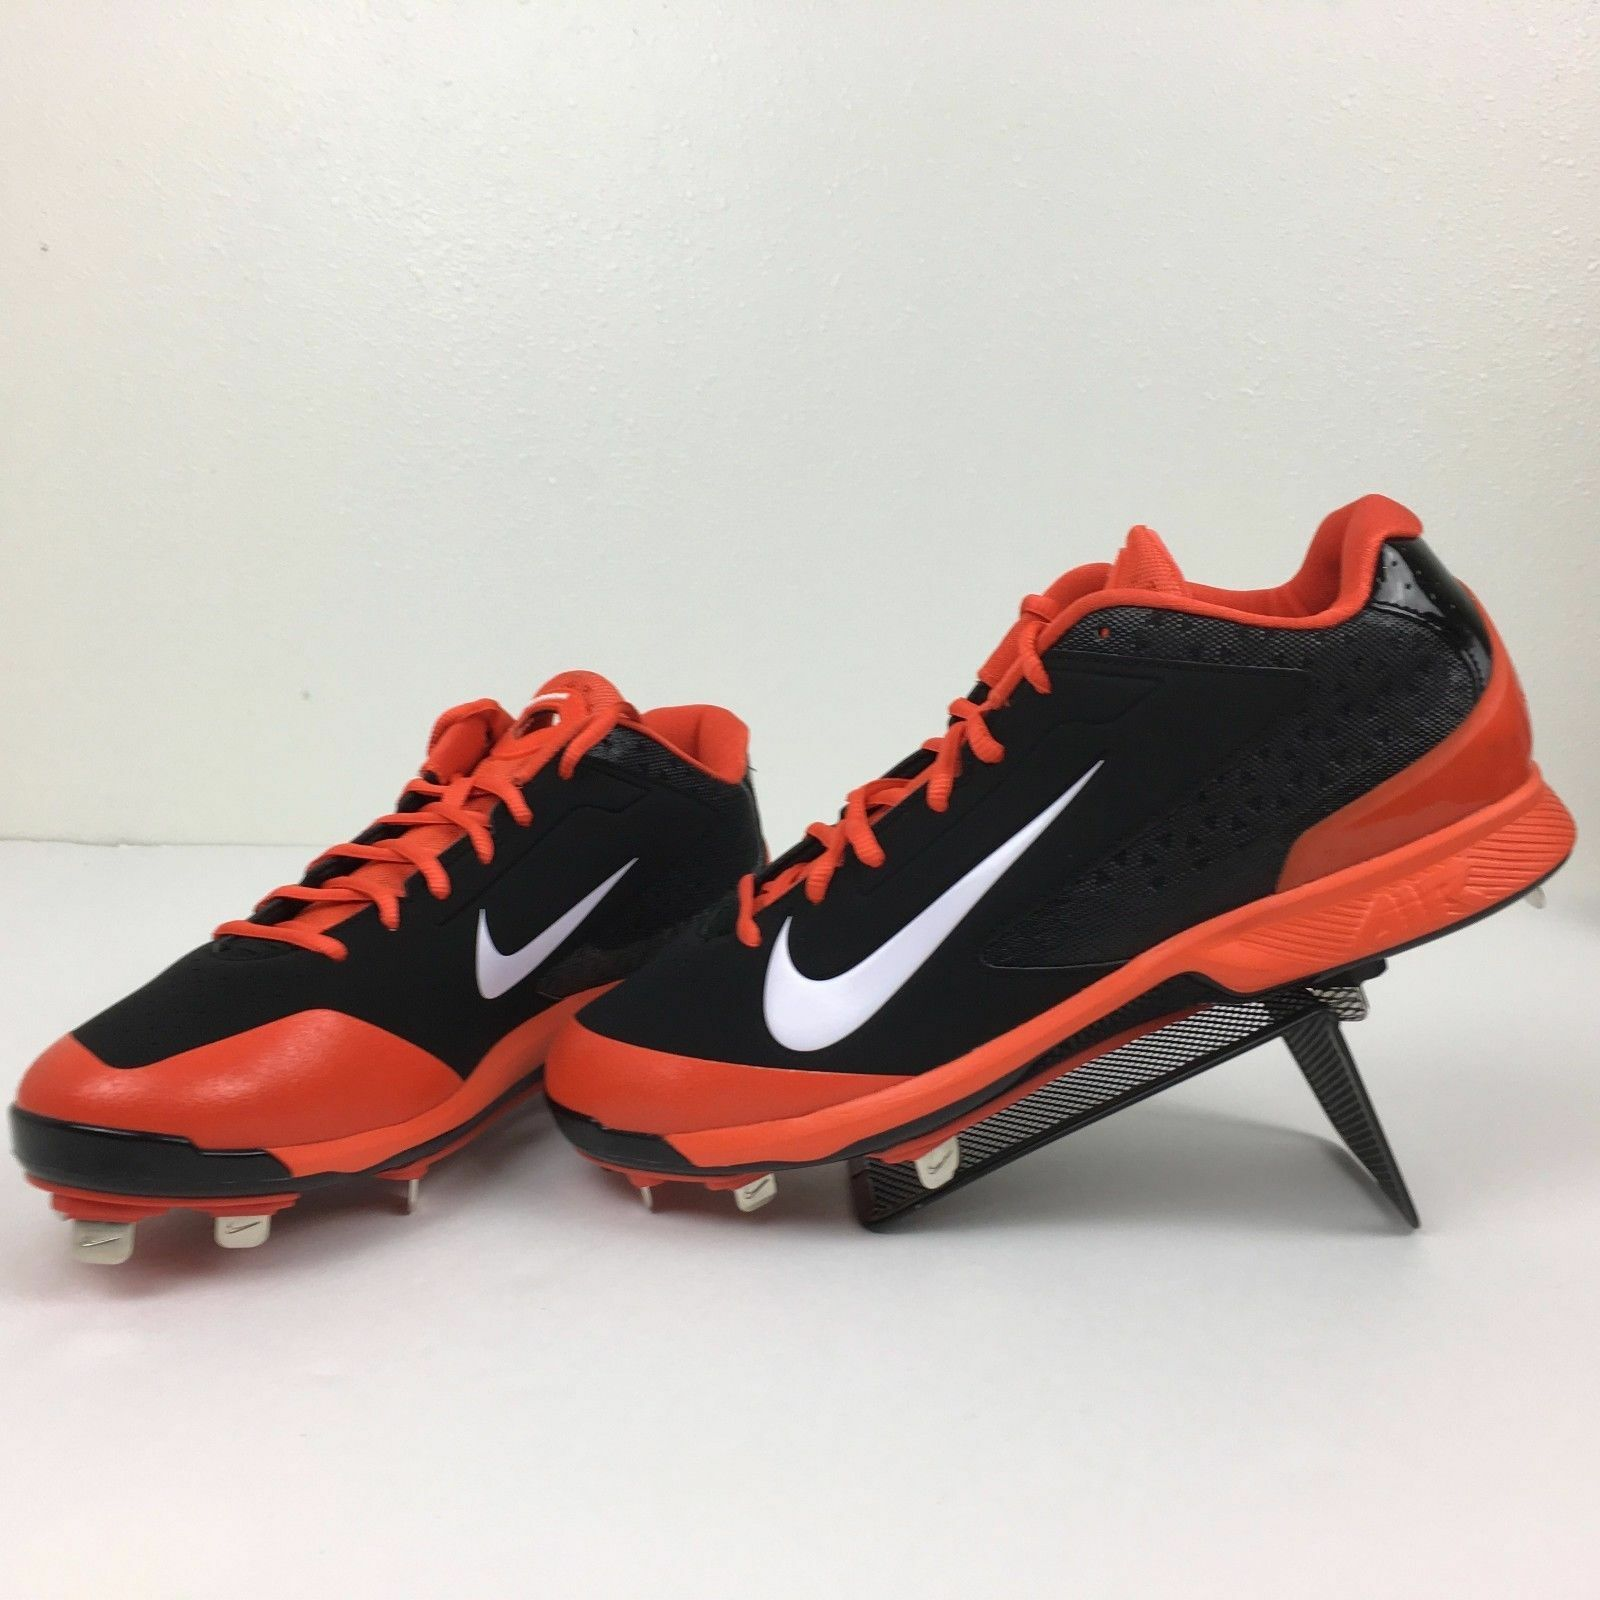 New shoes for men and women, limited time discount Nike Men's Air Huarache Pro Low Metal Baseball Cleats Orange/Black Comfortable